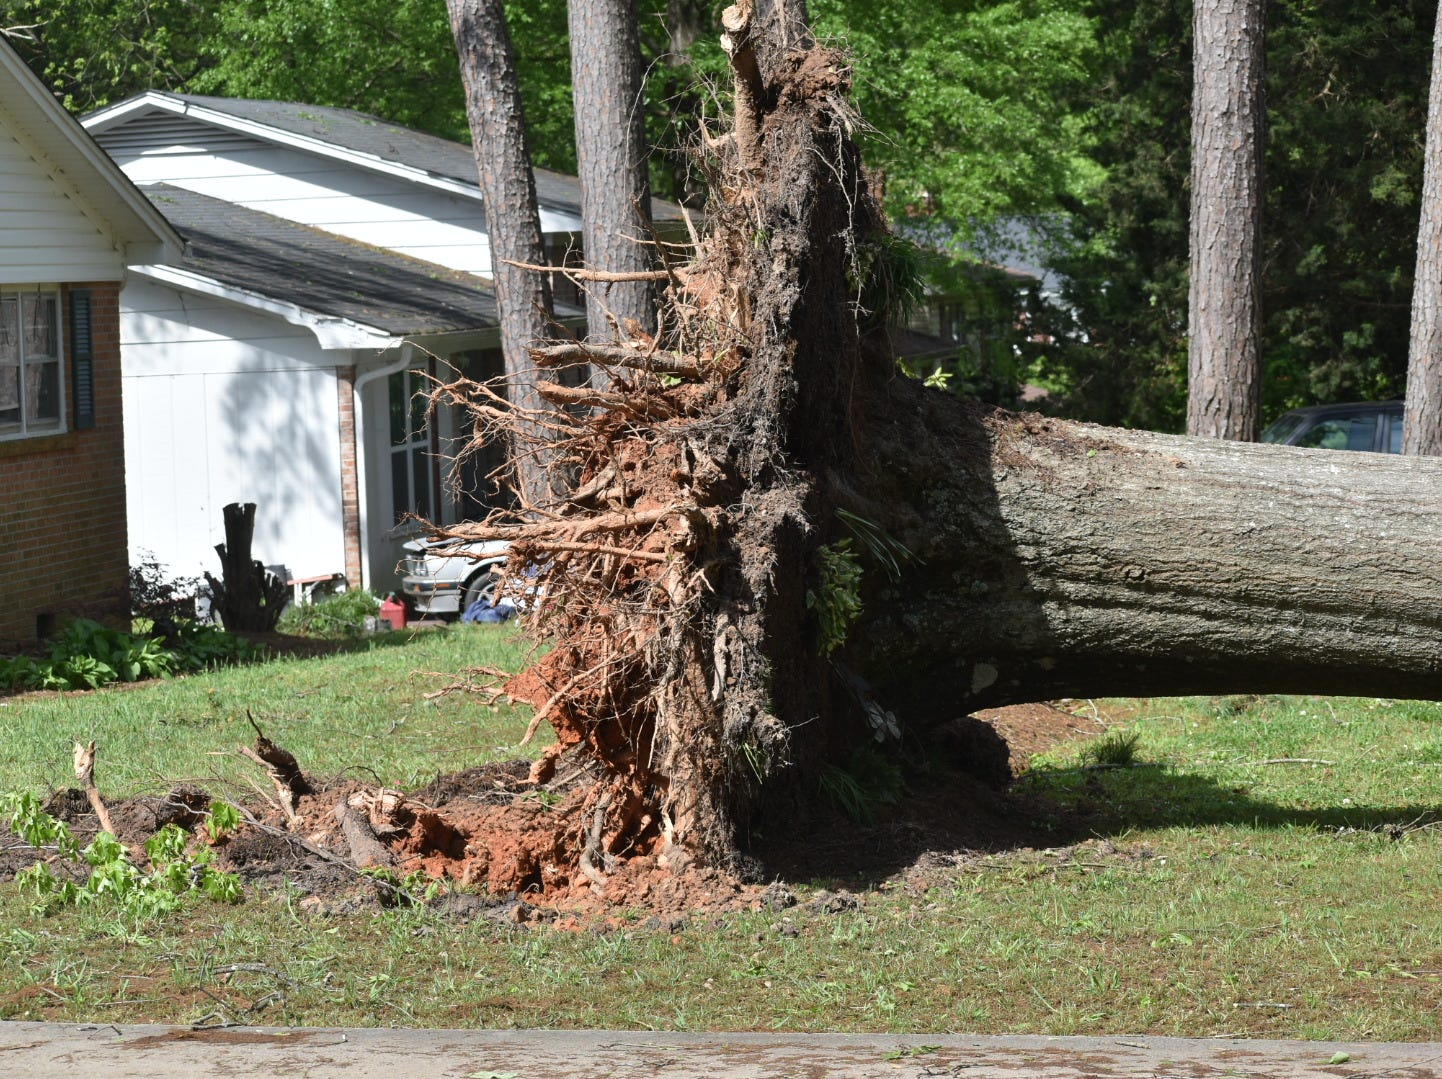 An uprooted tree caused by storms in Simpsonville.